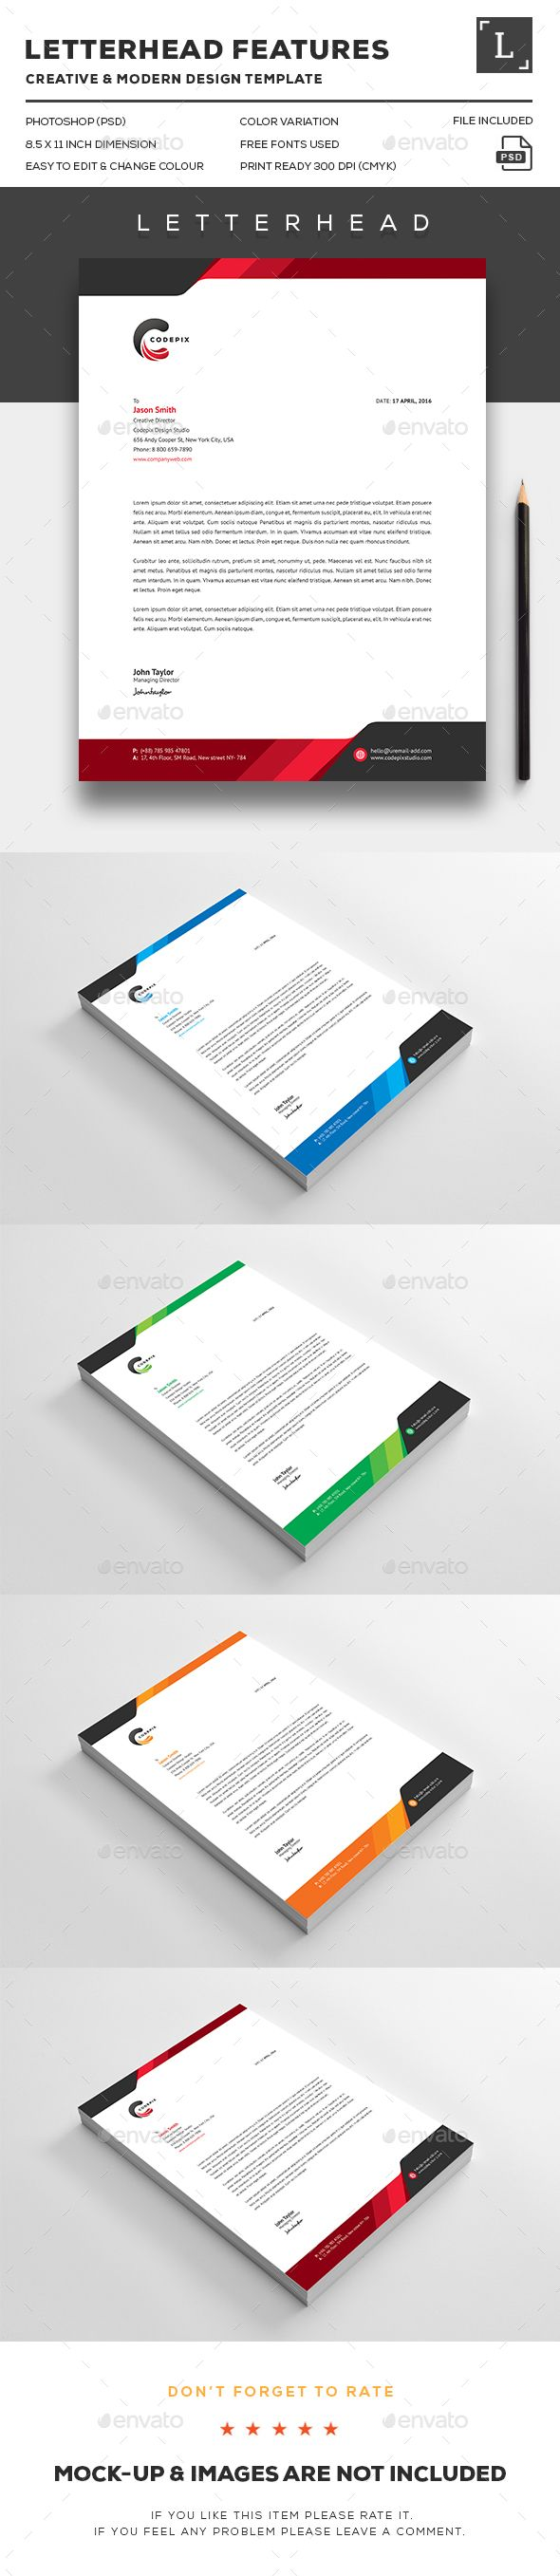 Buy Letterhead by UXcred on GraphicRiver FEATURES